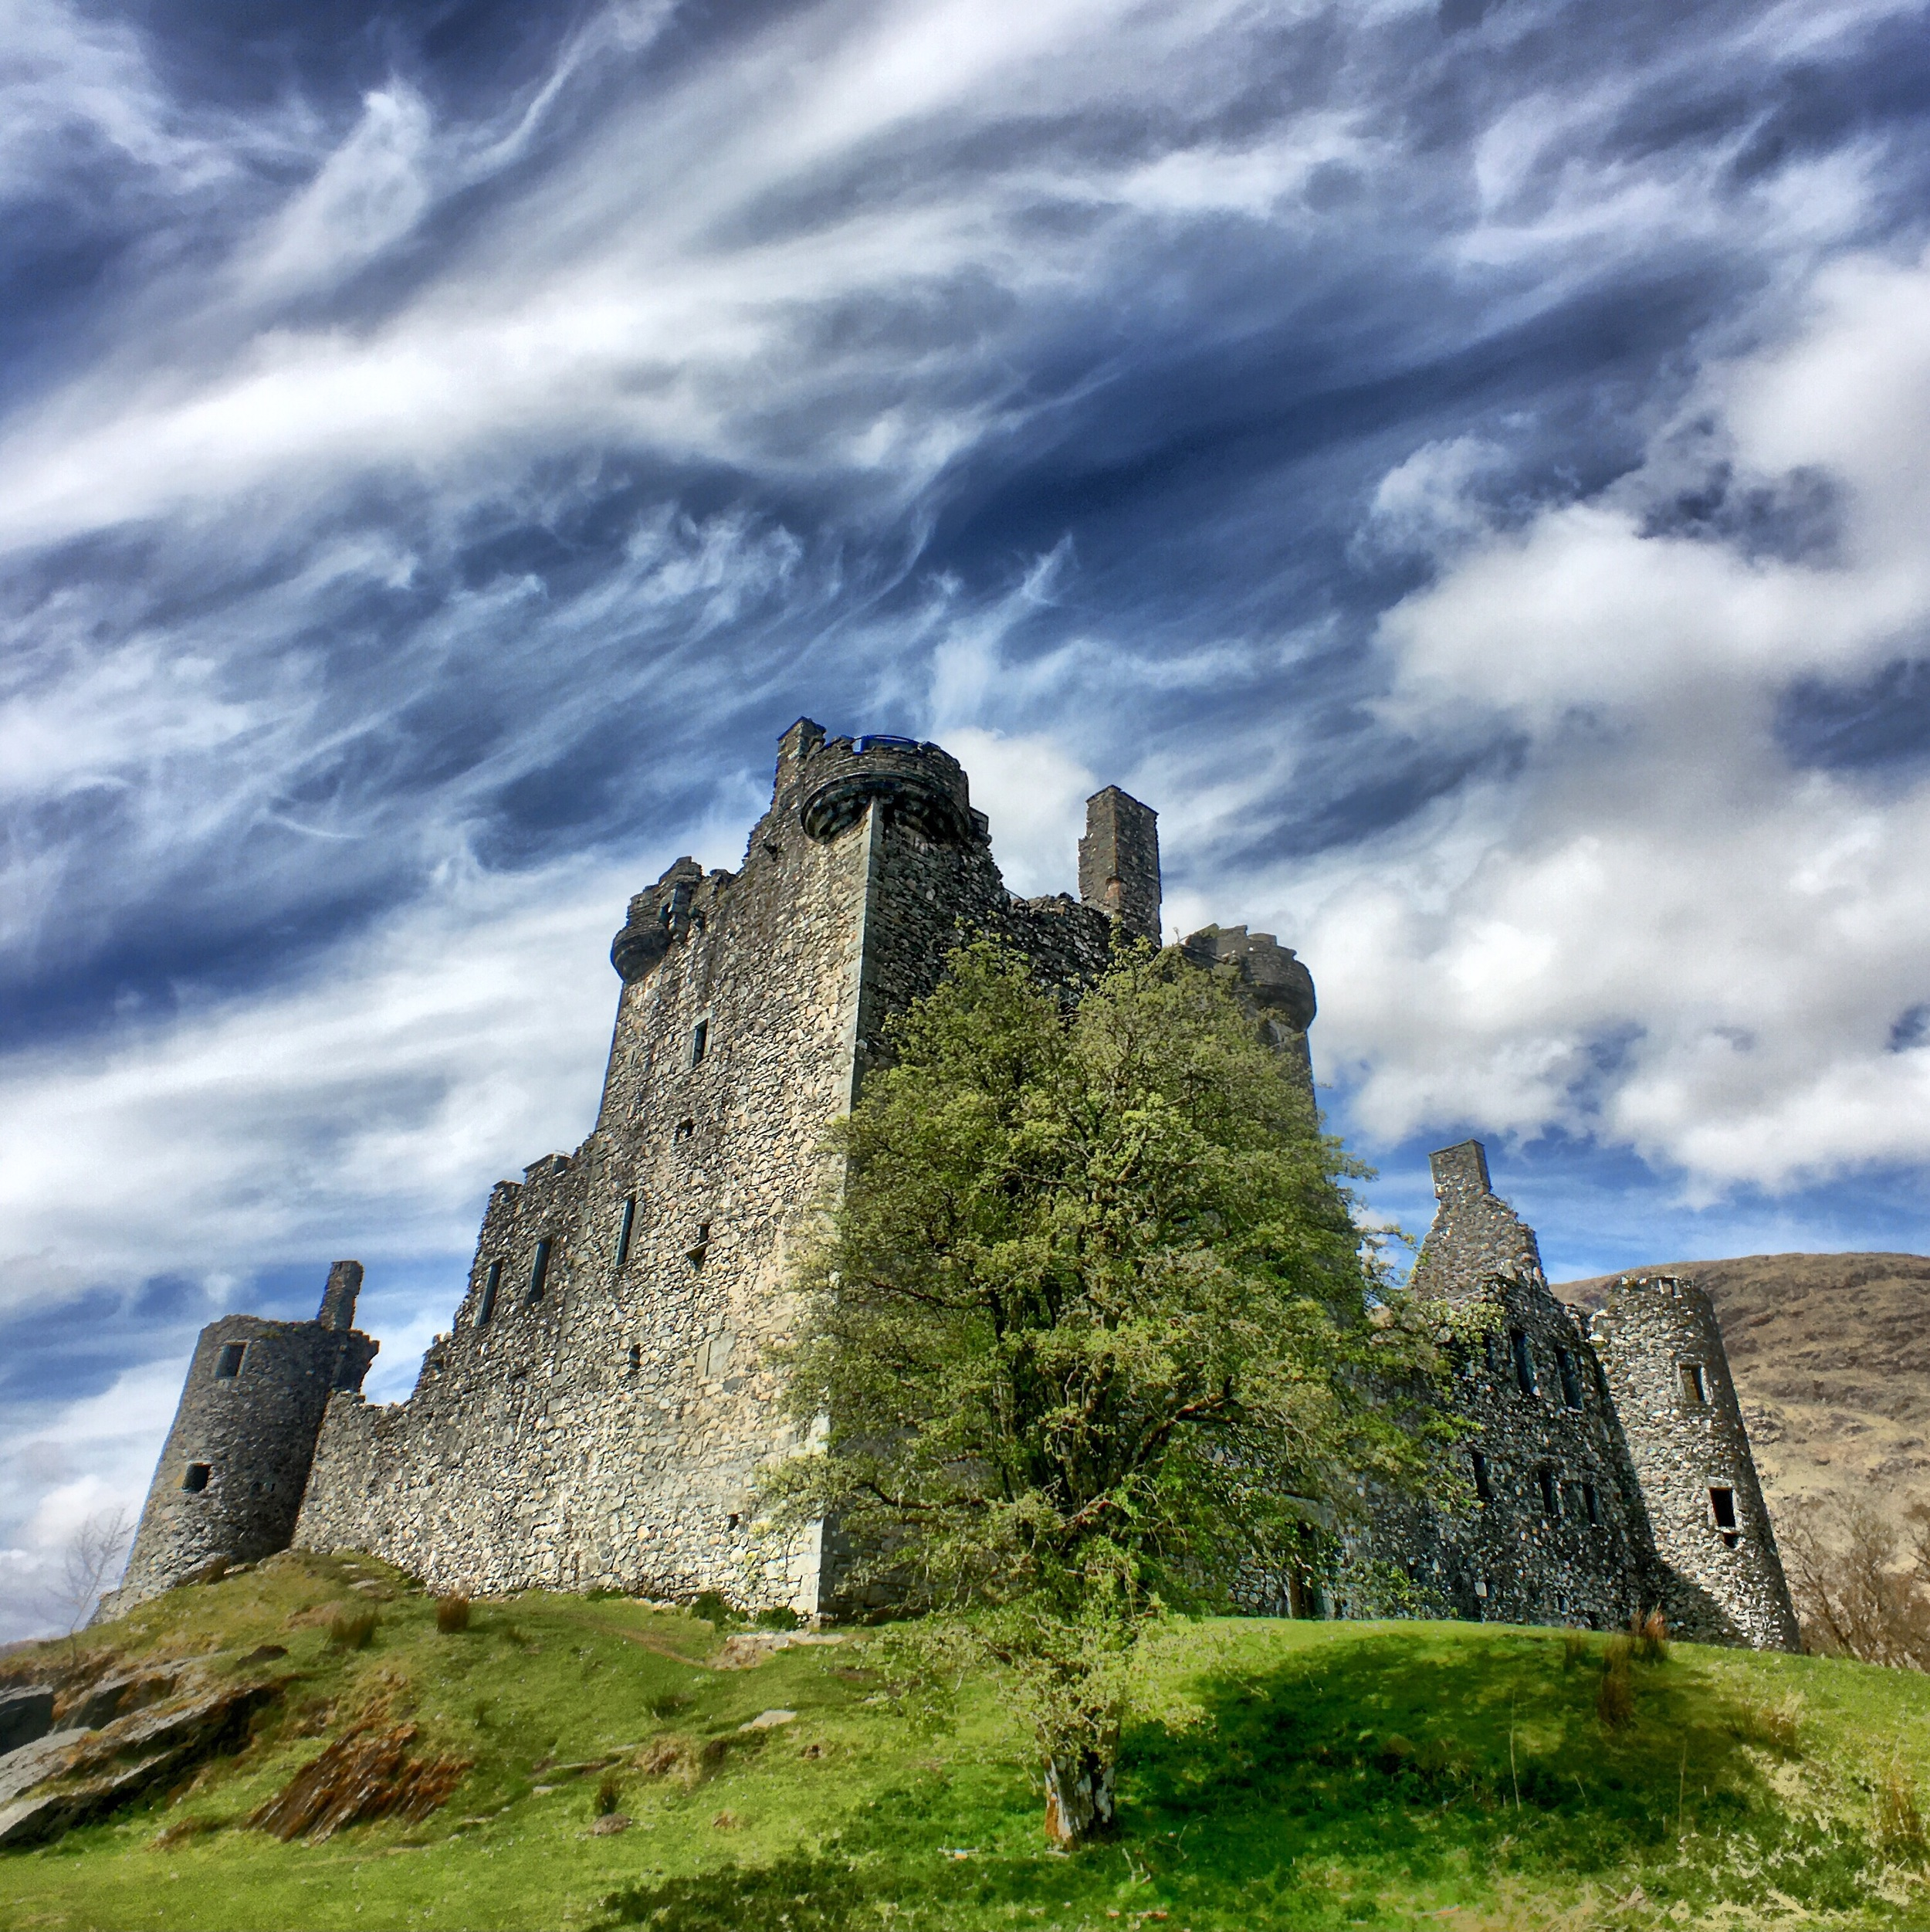 HDR of Kilchurn Castle in Scotland on a cloudy day photographed with ProCamera